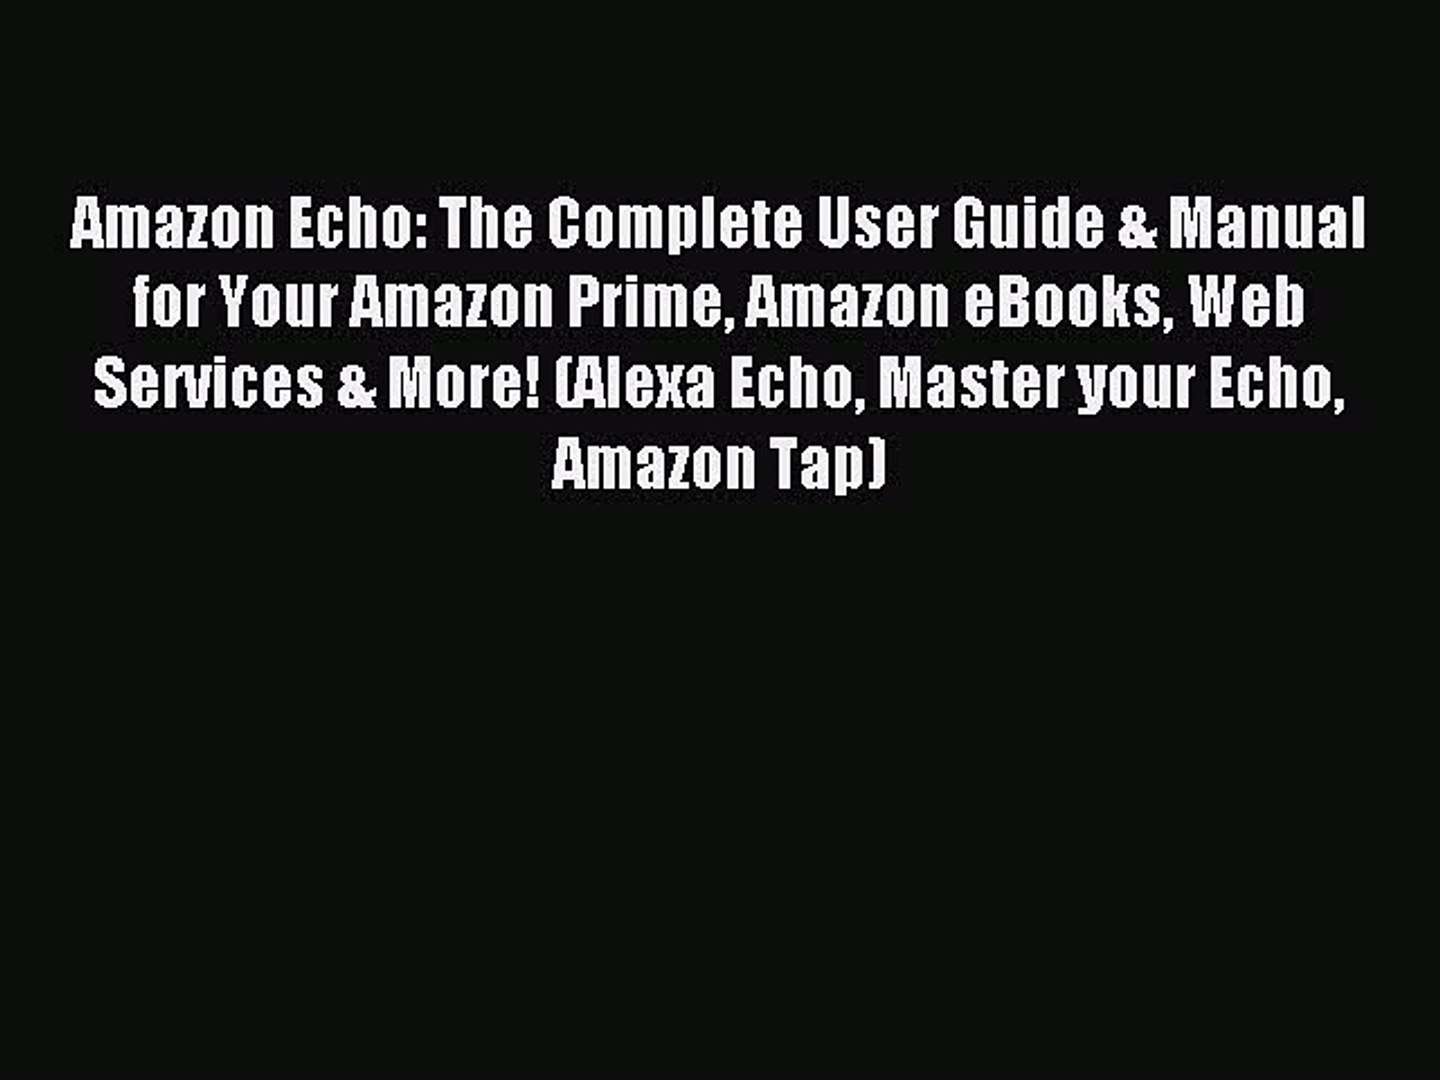 Download Amazon Echo: The Complete User Guide & Manual for Your Amazon Prime Amazon eBooks